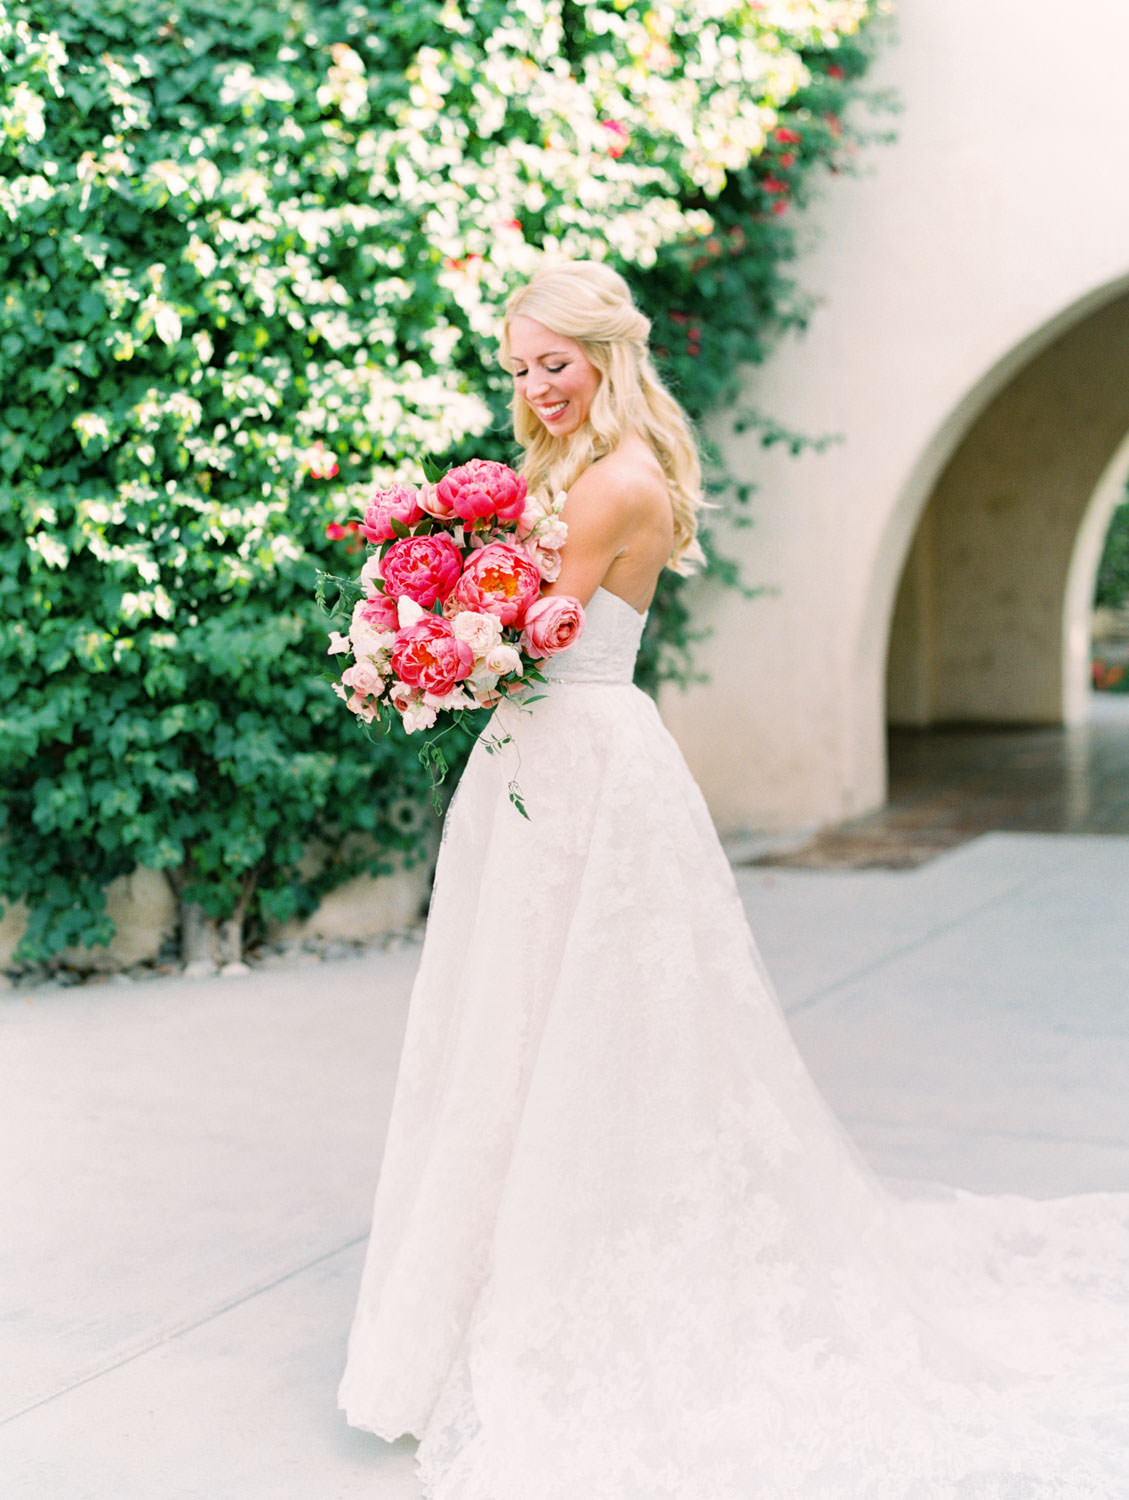 Bride in lace Watters sweetheart gown with large bridal bouquet of pink tones with peonies and roses. Miramonte Resort wedding. Film photography by Cavin Elizabeth.